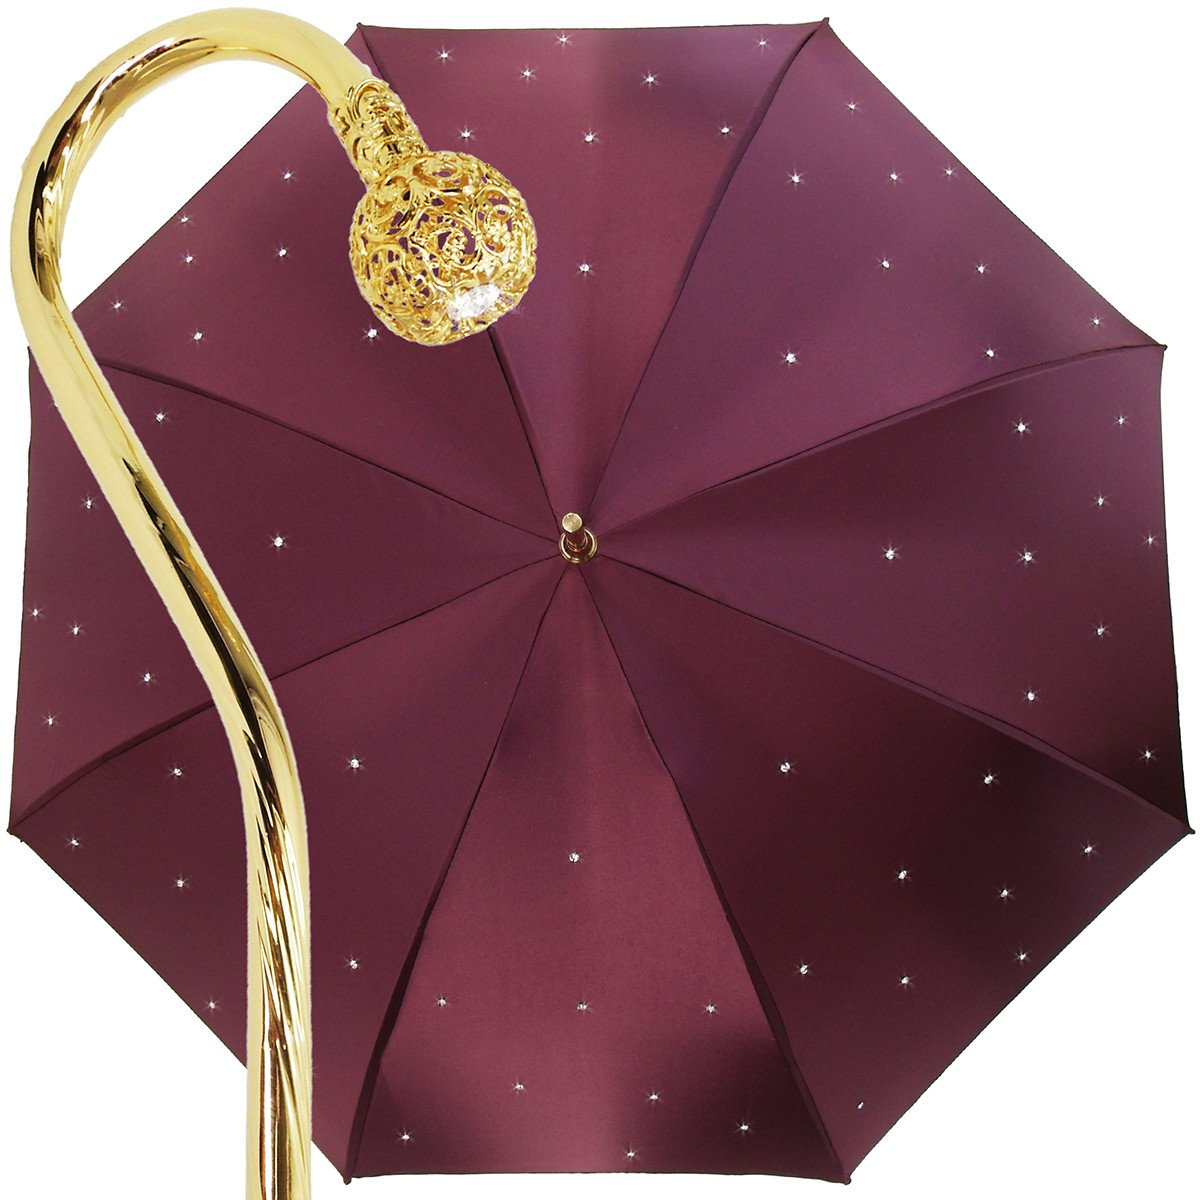 FASHION DOUBLE CLOTH BURGUNDY CRYSTALS UMBRELLAS great gift idea